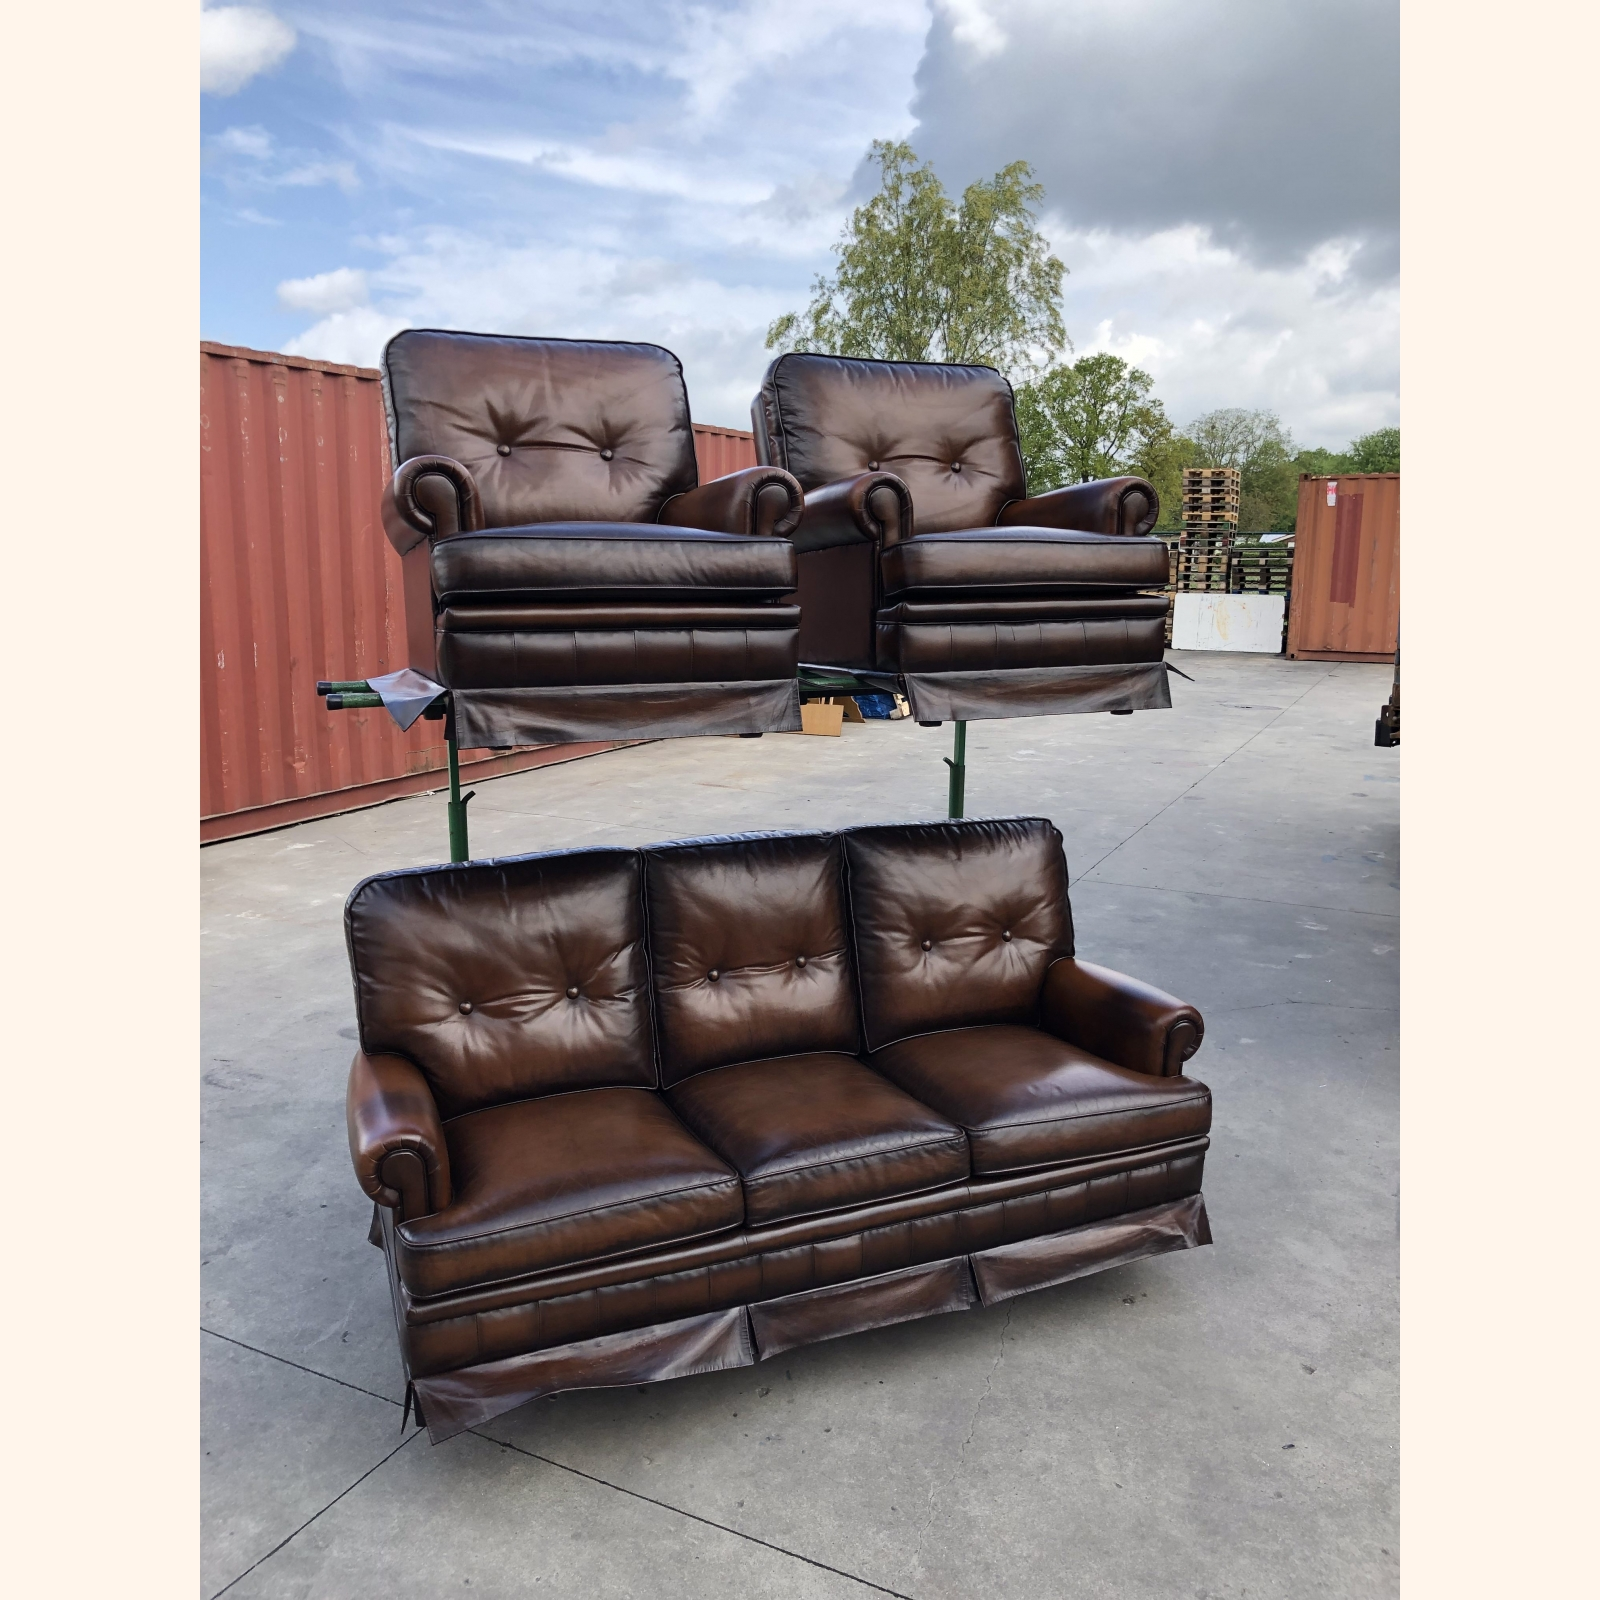 Impeccable High-end Leather Sofa Set 3-1-1